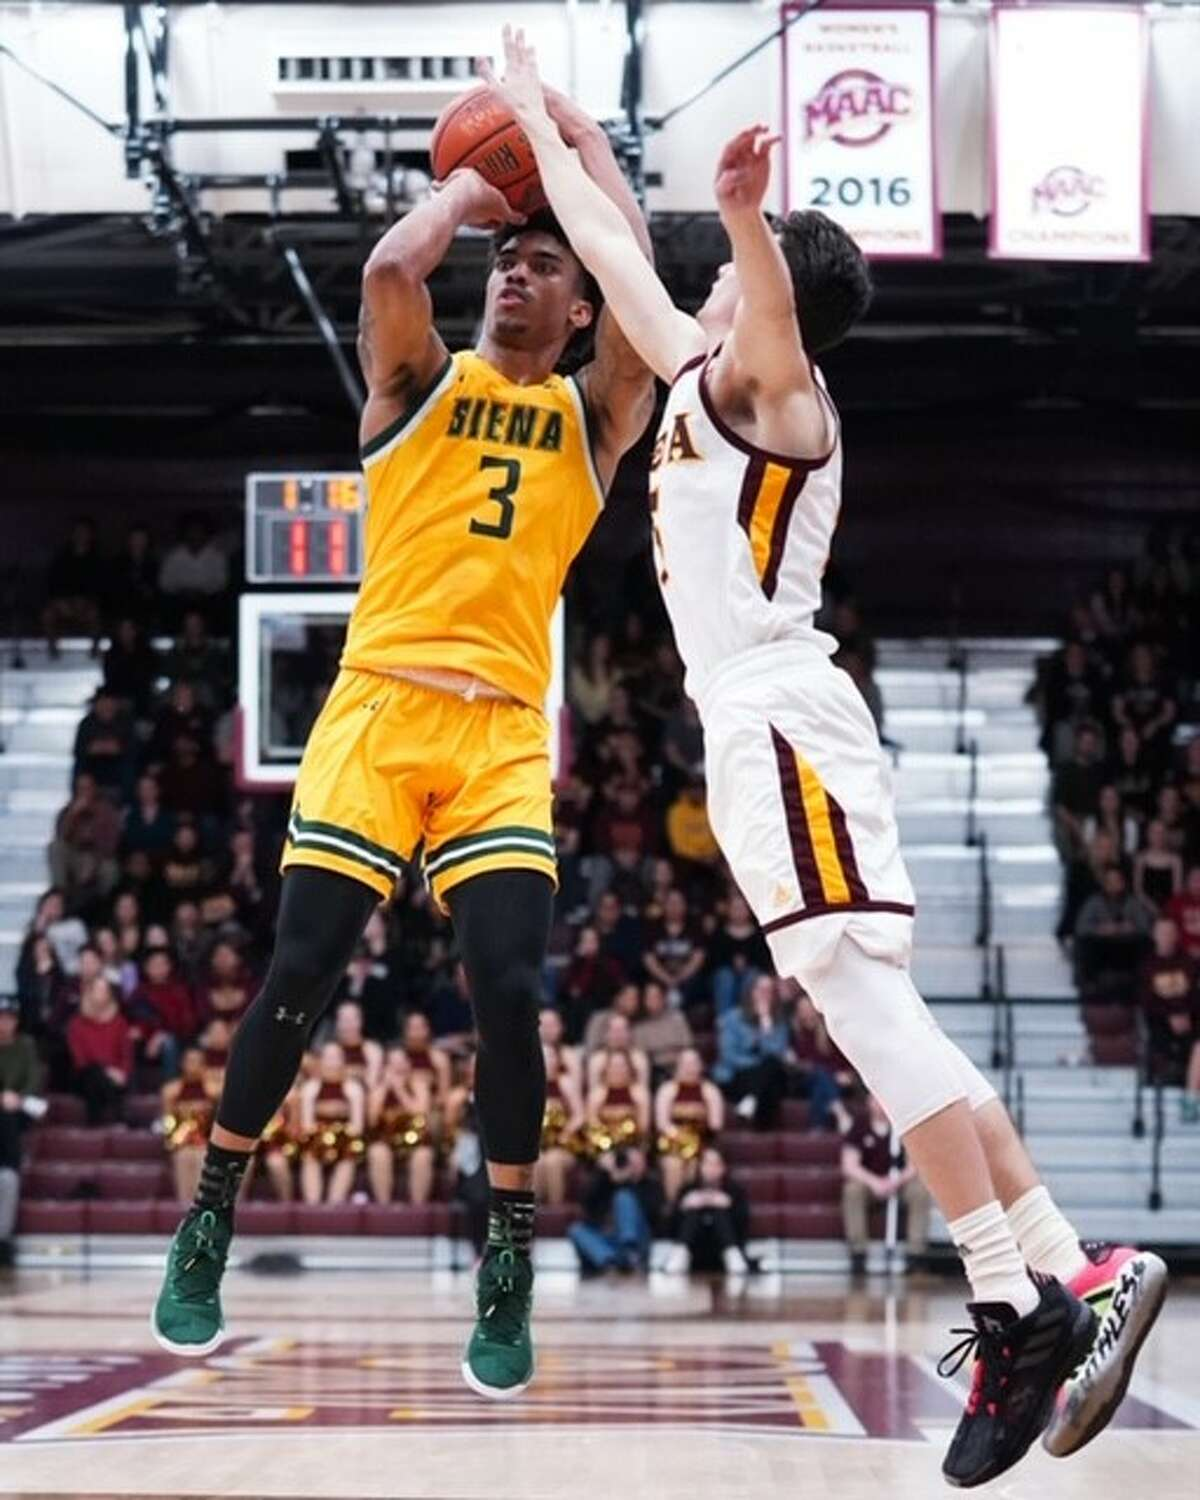 Siena Manny Camper puts up a shot against Iona during their Metro Atlantic Athletic Conference game on Friday, Jan. 31, 2020, at Hynes Athletics Center. (Geraldo Rodriguez / Special to the Times Union)